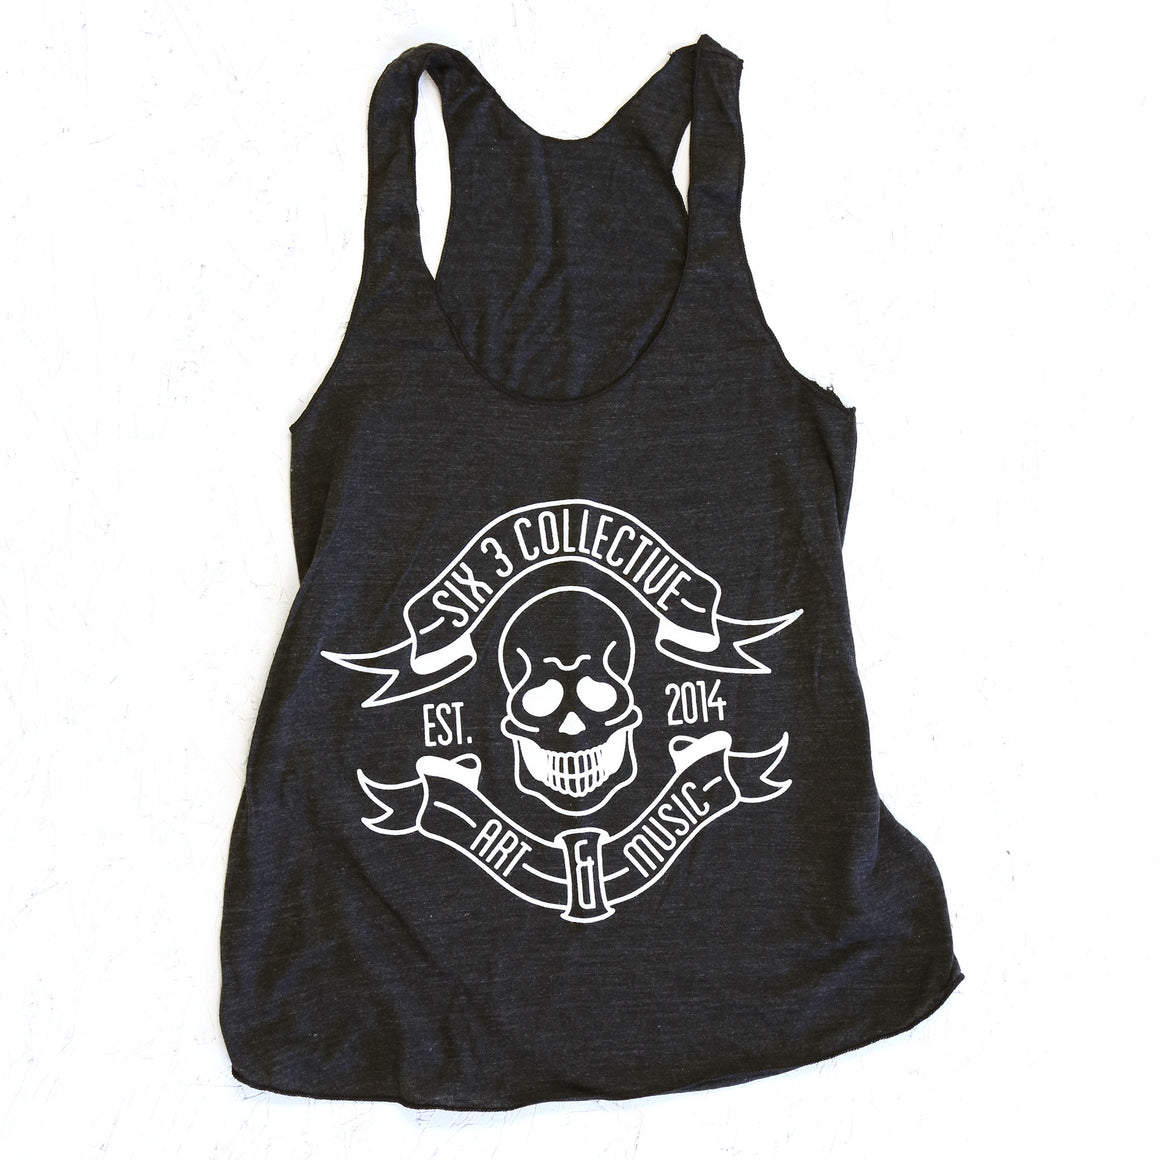 SIX 3 COLLECTIVE Classic Logo Womens Black Racerback Tank